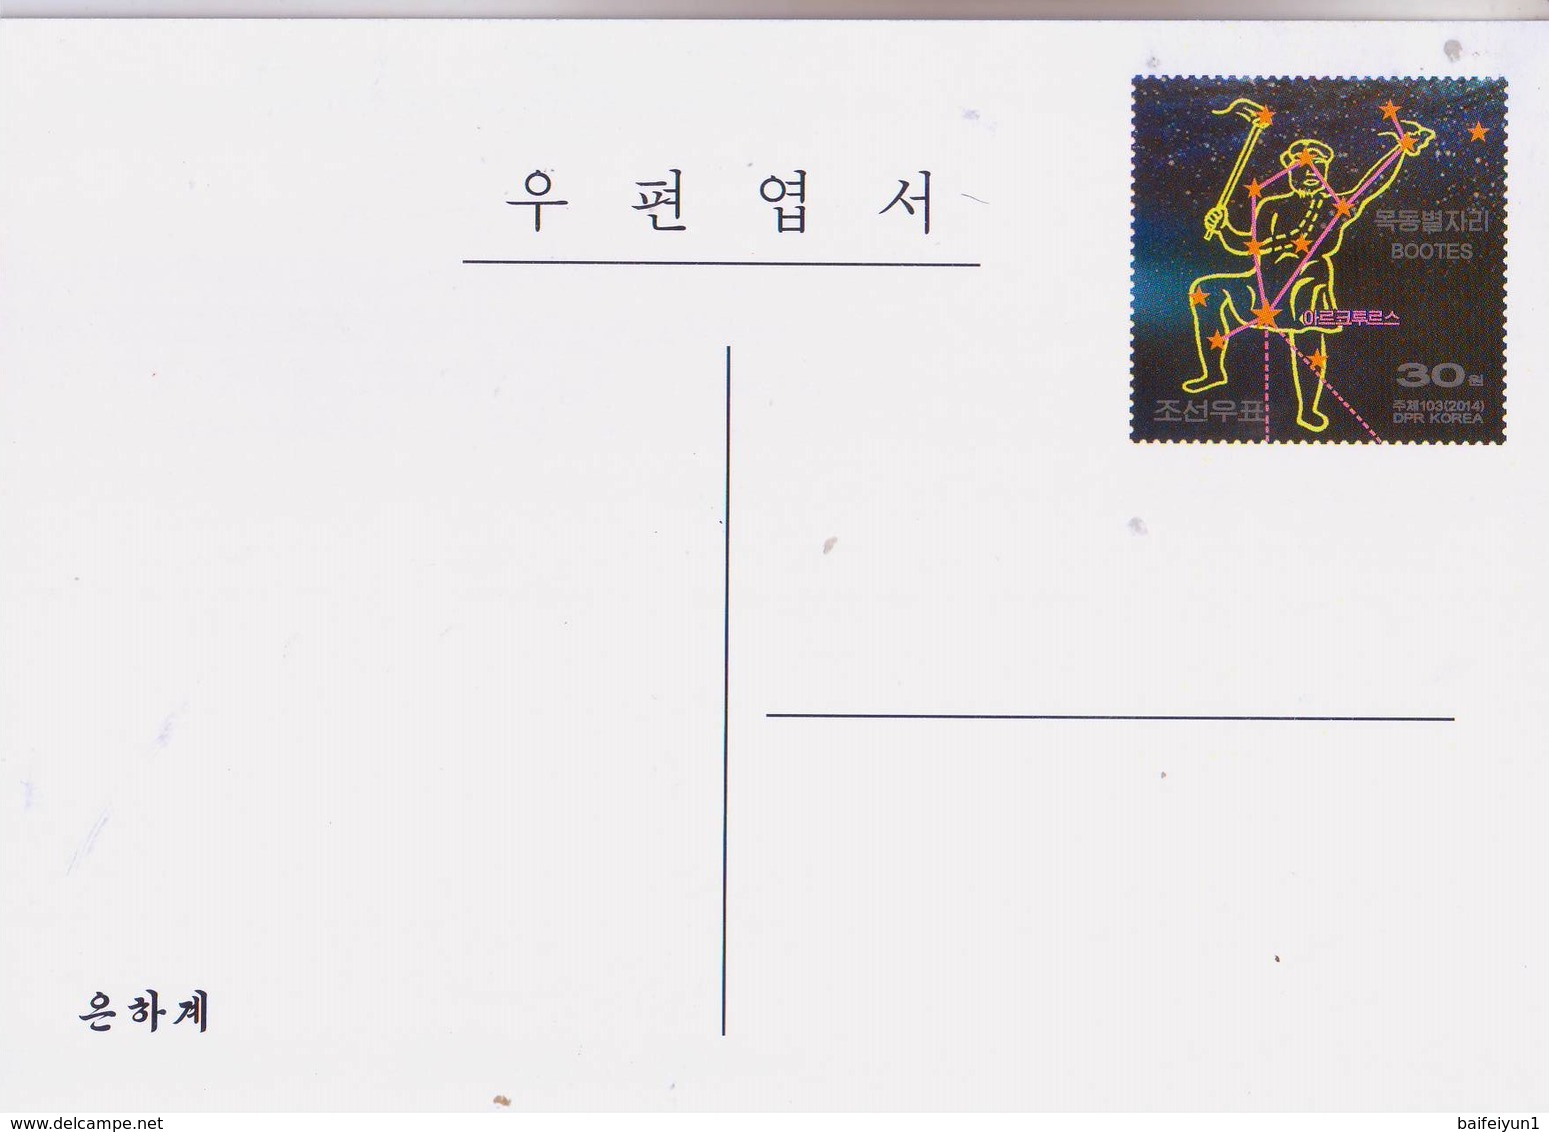 North Korea 2014 The Bootes Postal Pre-stamped Card - Astrology